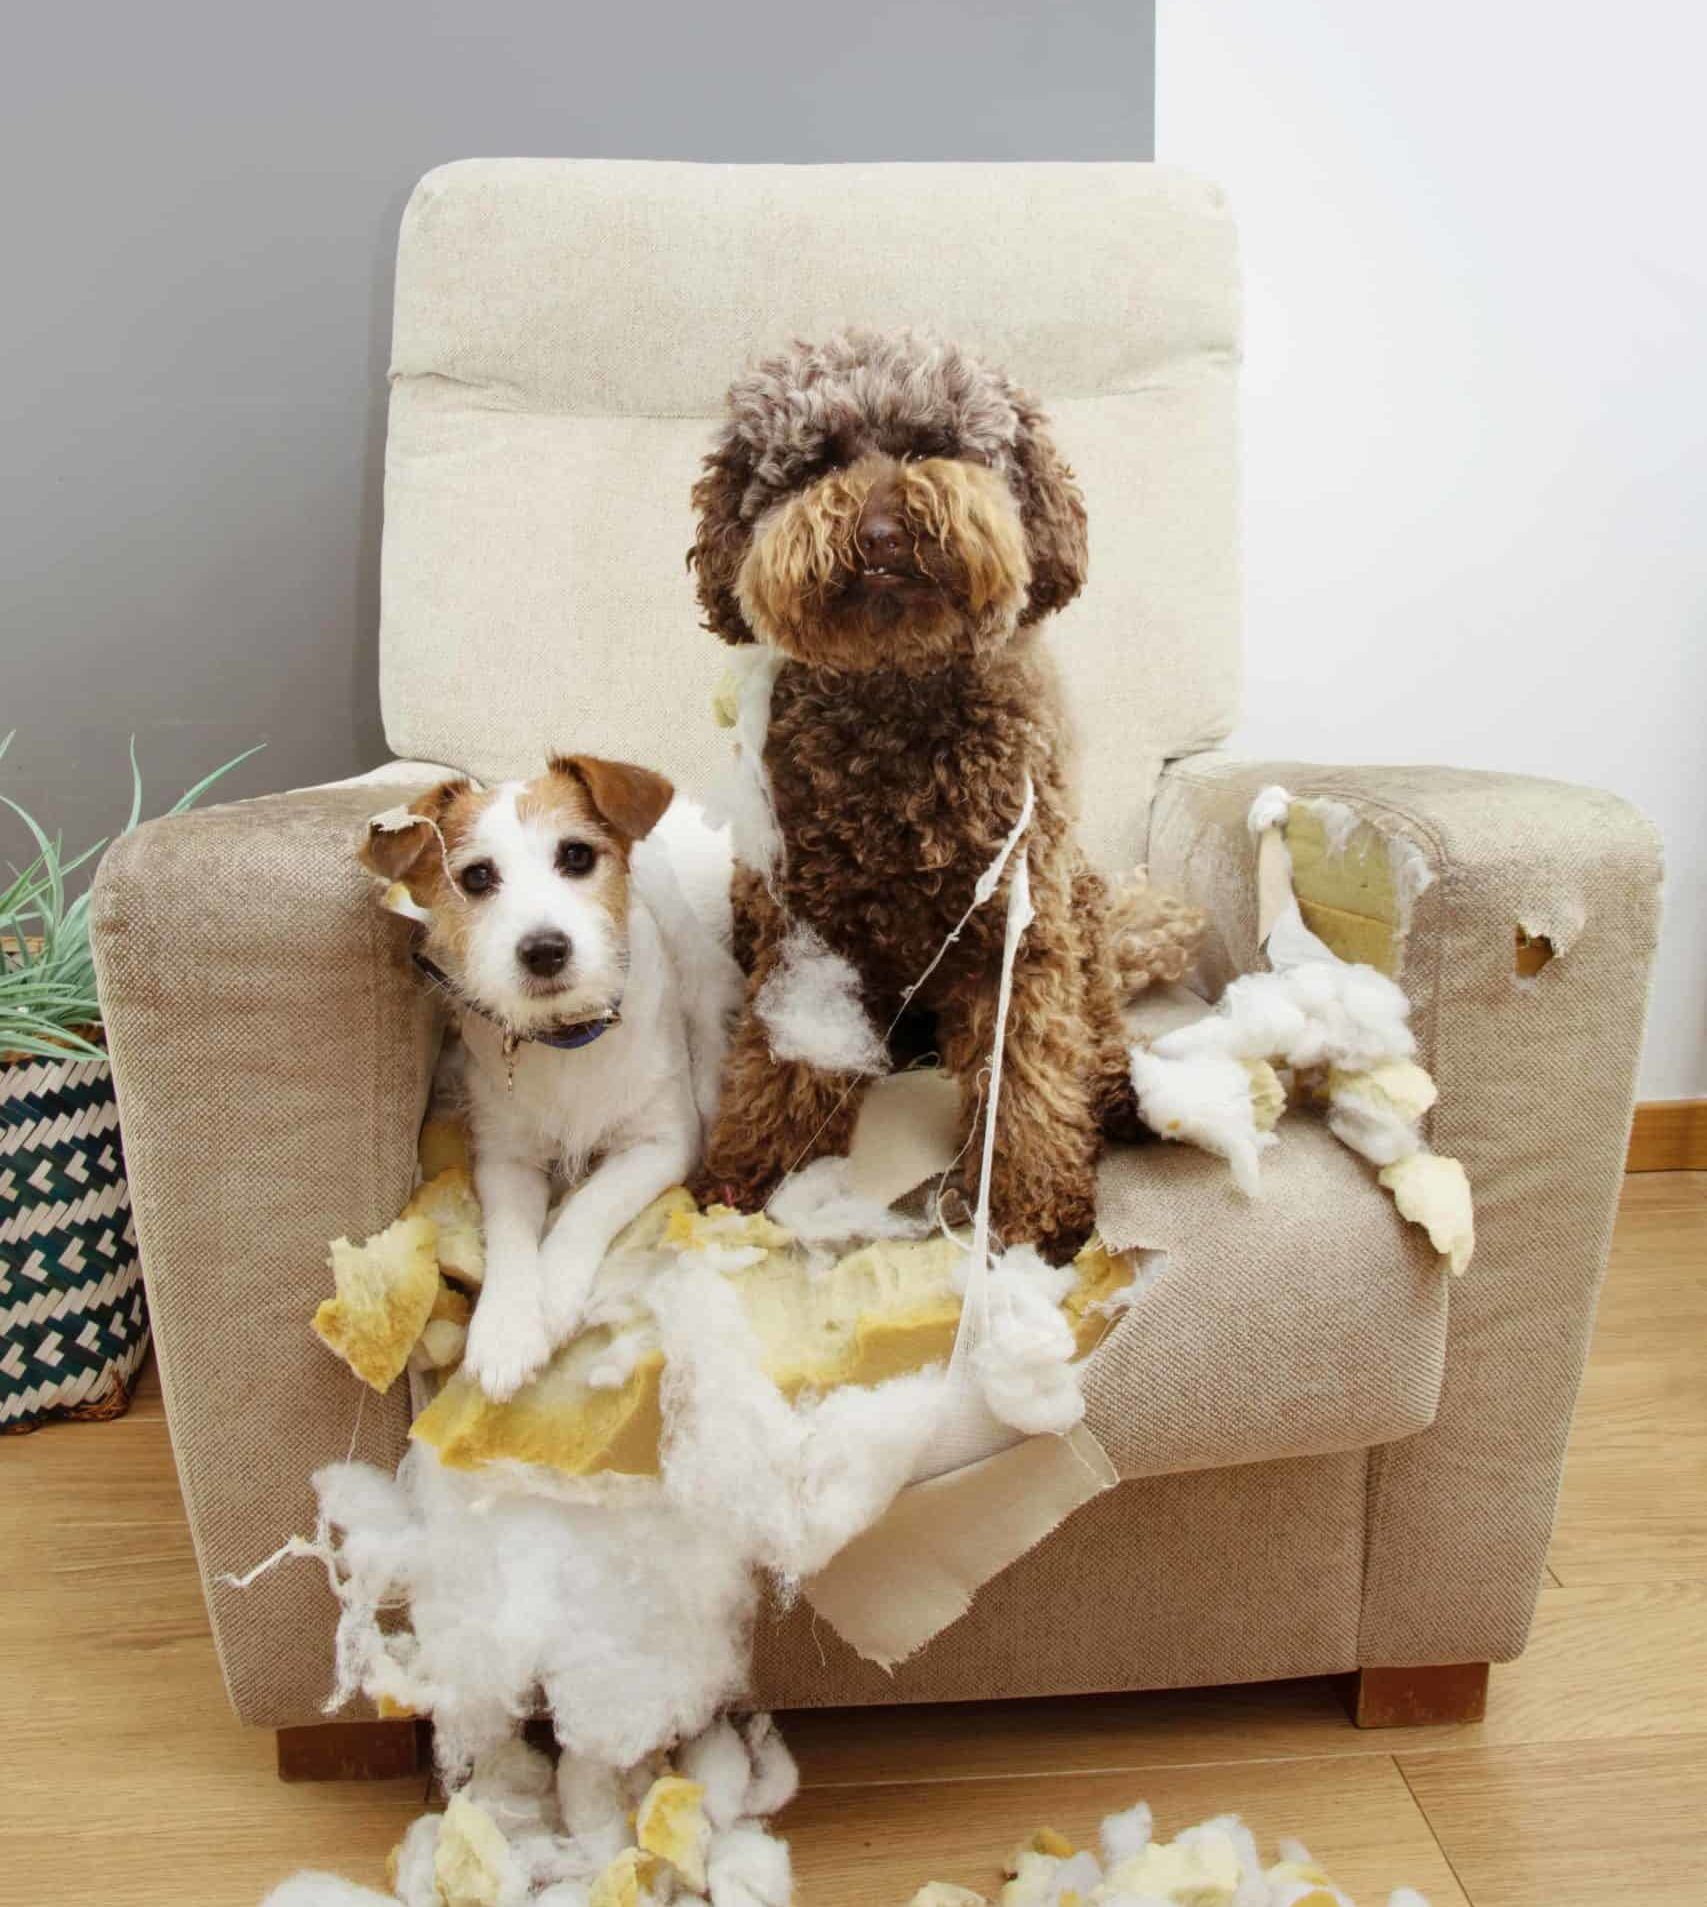 Two dogs sit in ruined chair. Safeguard your home and keep your puppy occupied during its teething phase. Use these hacks to protect your furniture from a teething puppy.